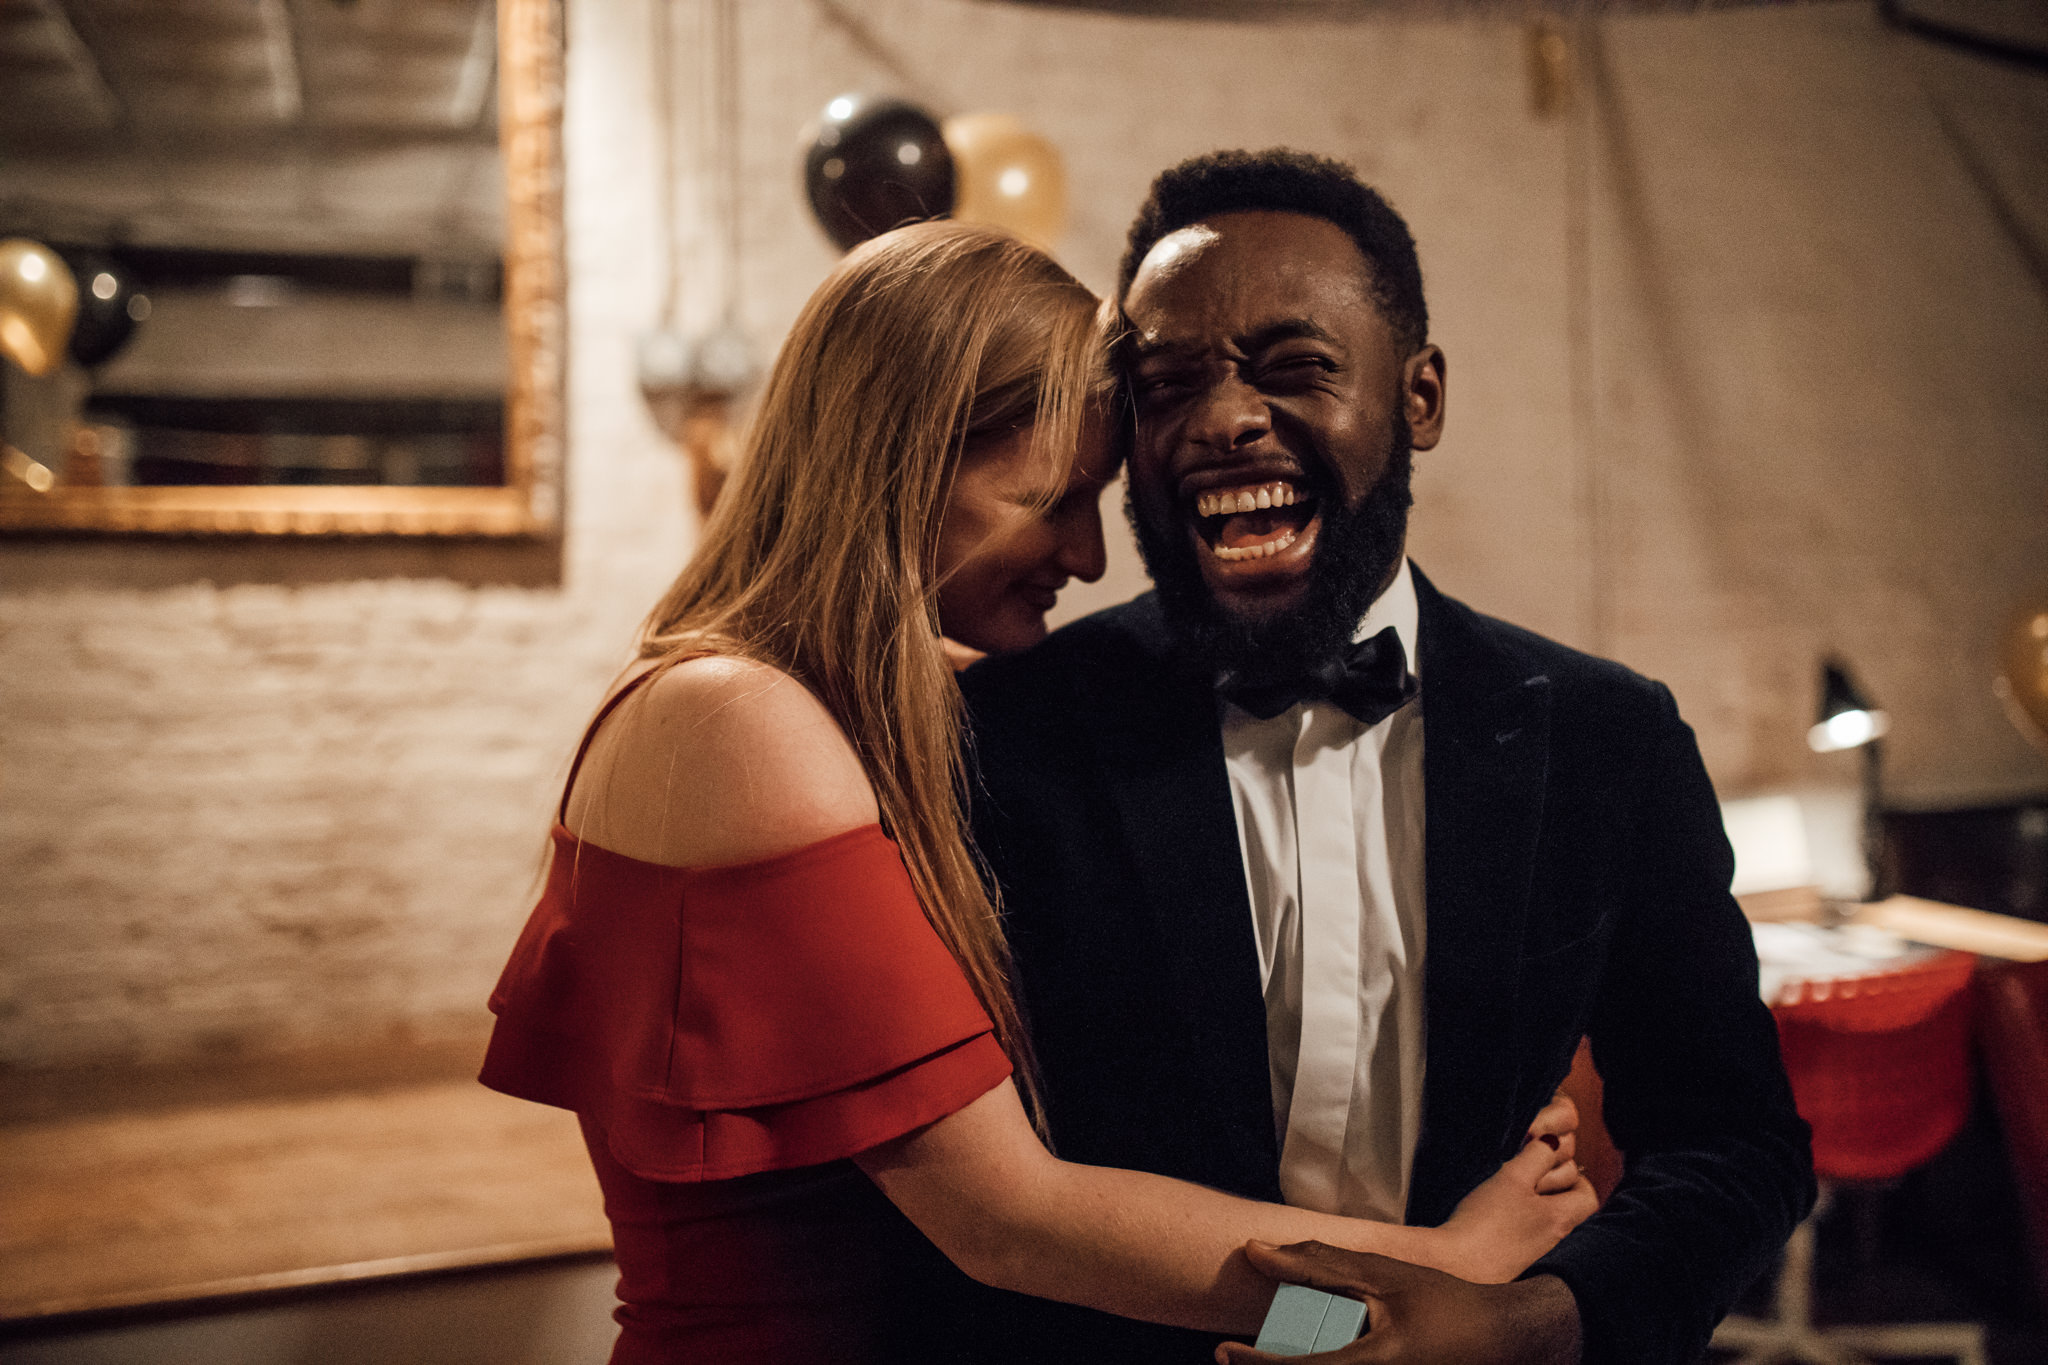 memphis-engagement-photographer-new-years-eve-proposal-cassie-cook-photography-14.jpg